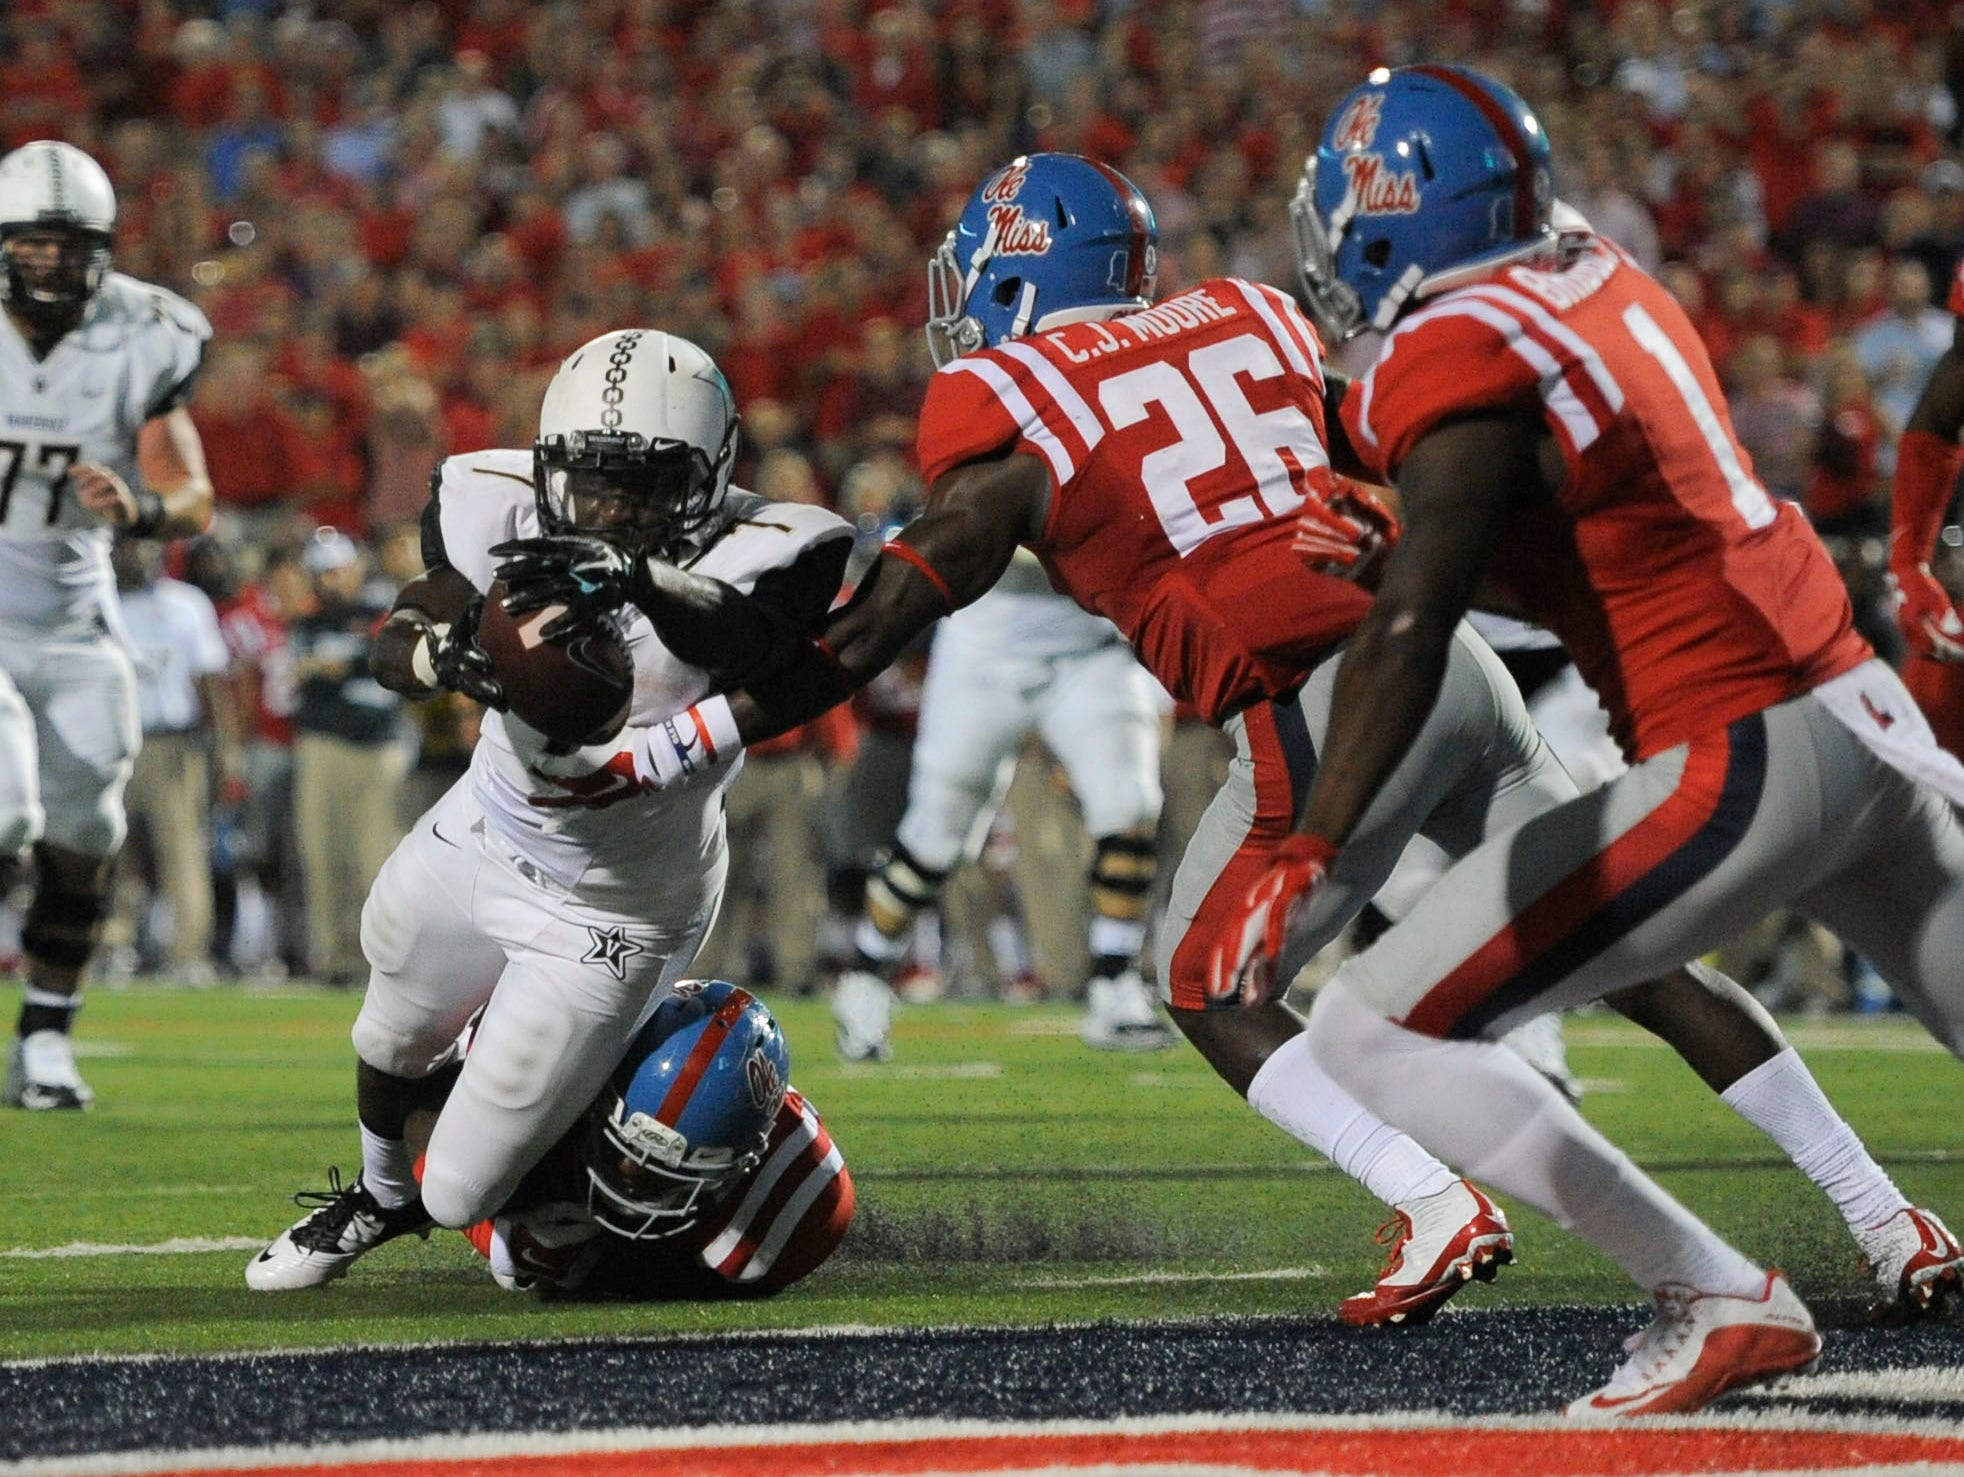 Vanderbilt running back Ralph Webb (7) dives into the end zone for a touchdown at Ole Miss on Sept. 26, 2015.